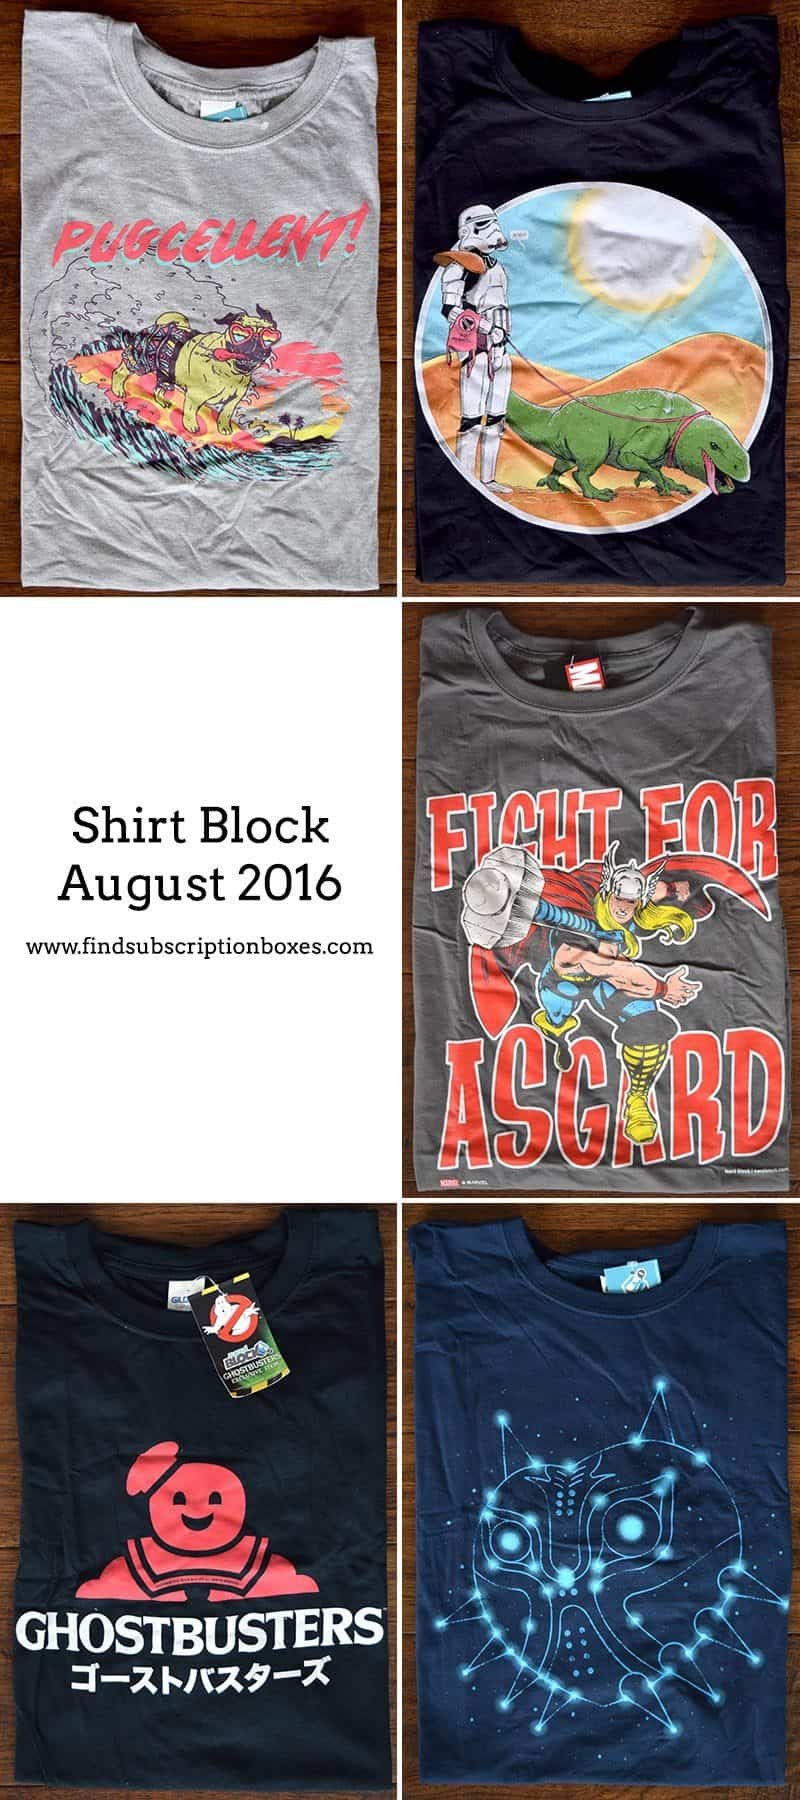 August 2016 Shirt Block Review - Inside the Box